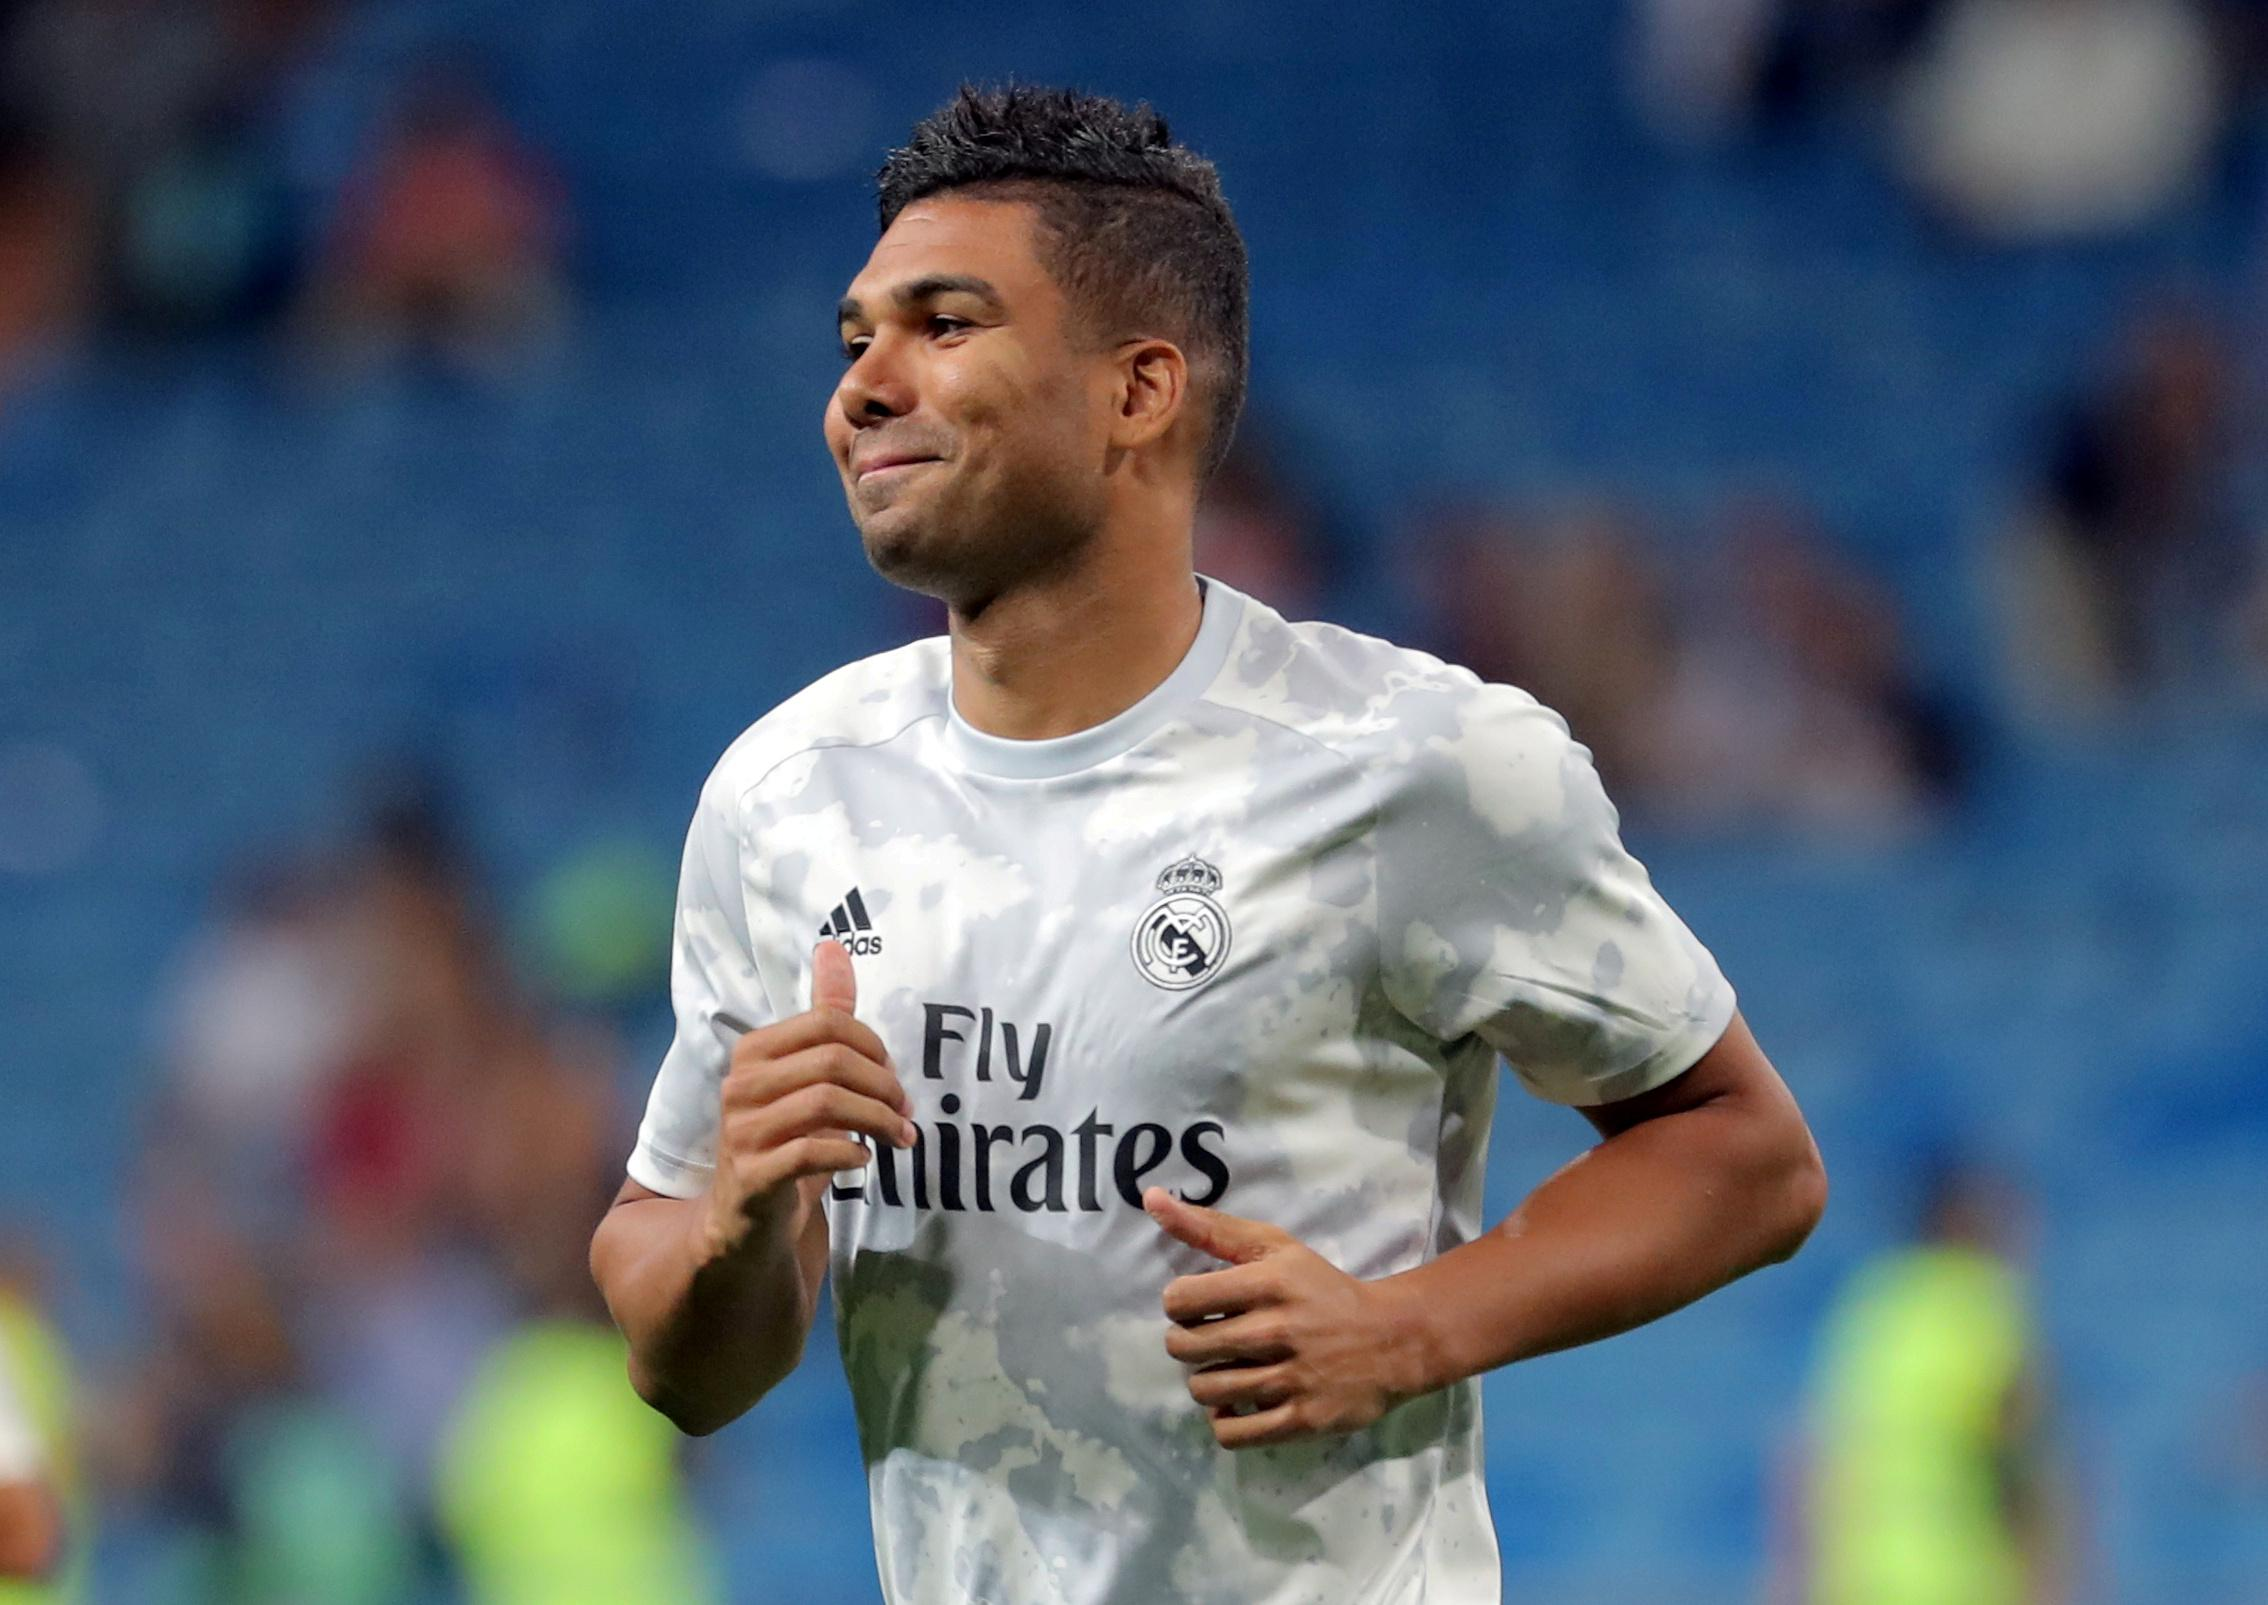 Real's injury woes continue ahead Mallorca tussle